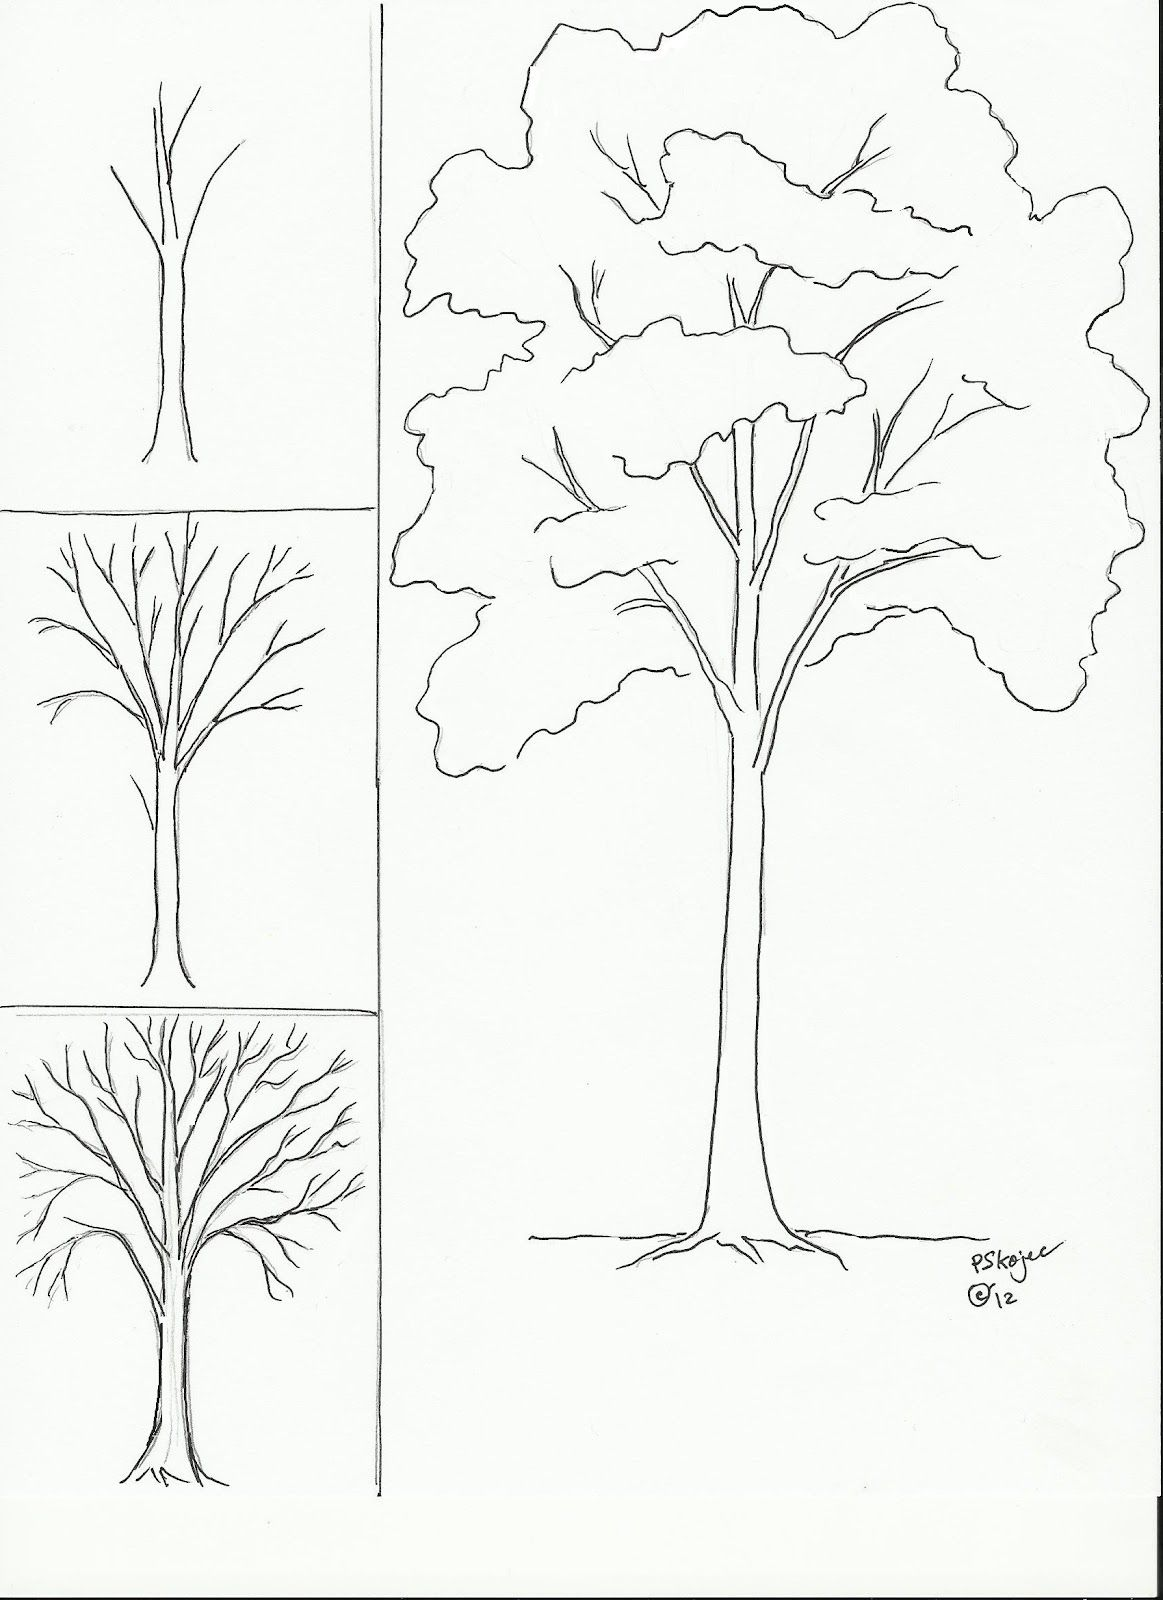 Drawing A Tree Is Not Too Hard If You Follow Some Simple Steps Draw The